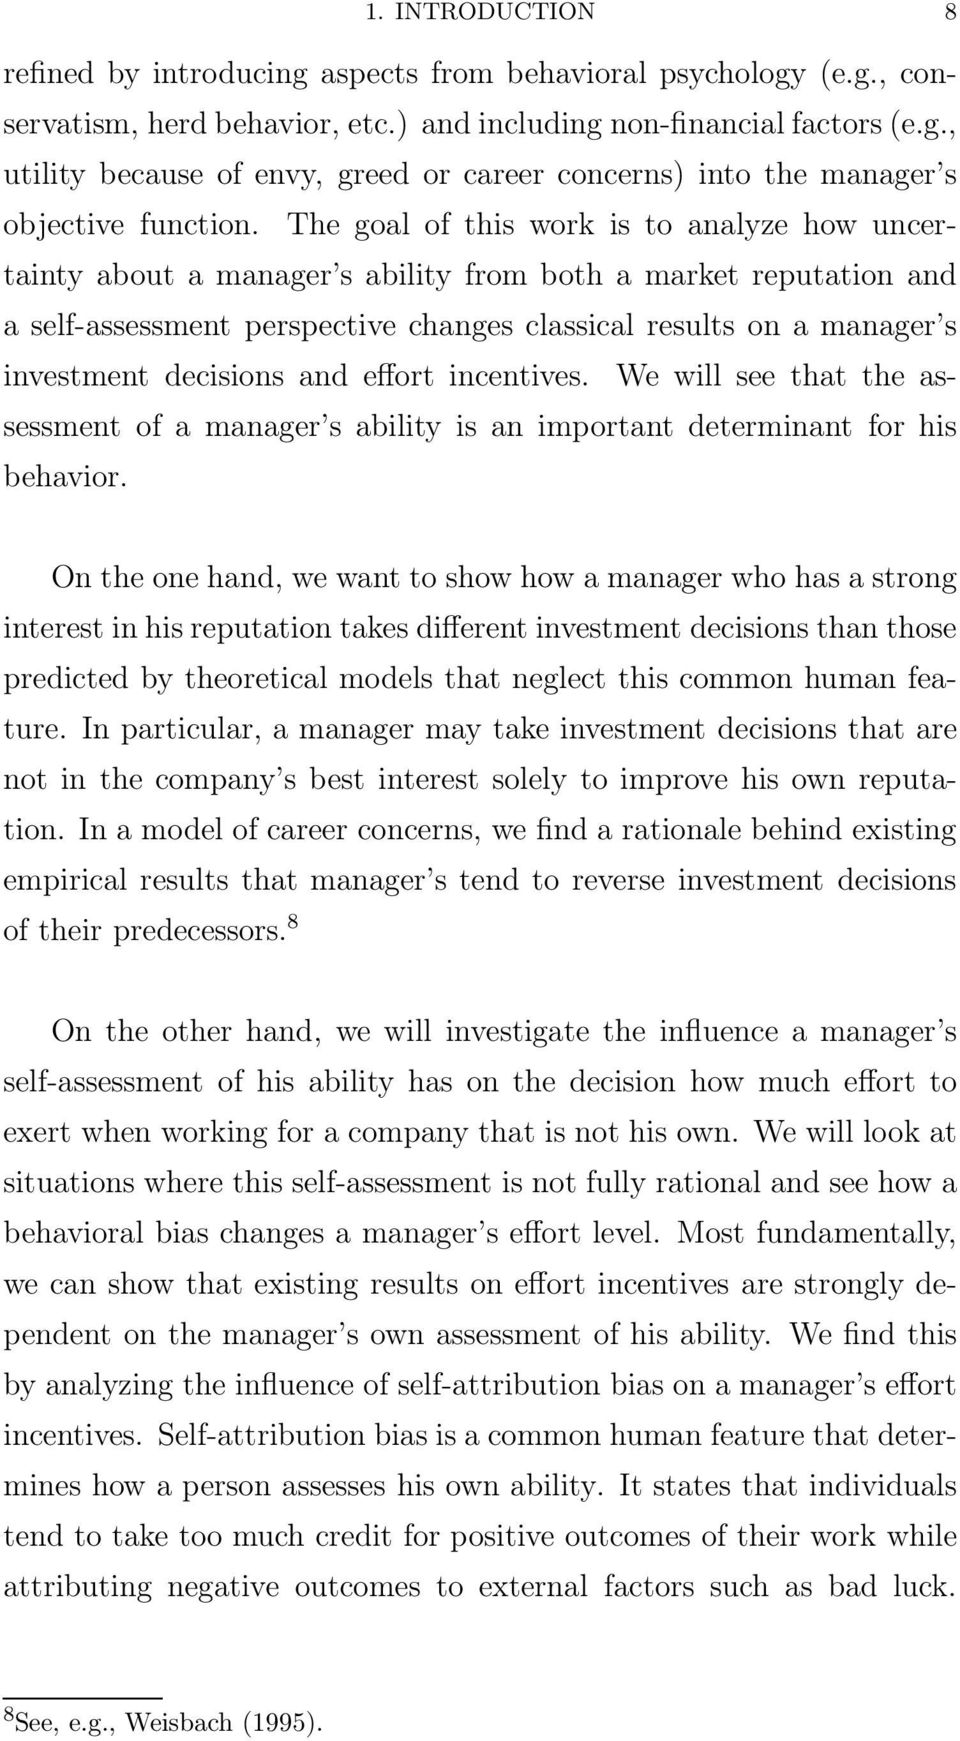 decisions and effort incentives. We will see that the assessment of a manager s ability is an important determinant for his behavior.